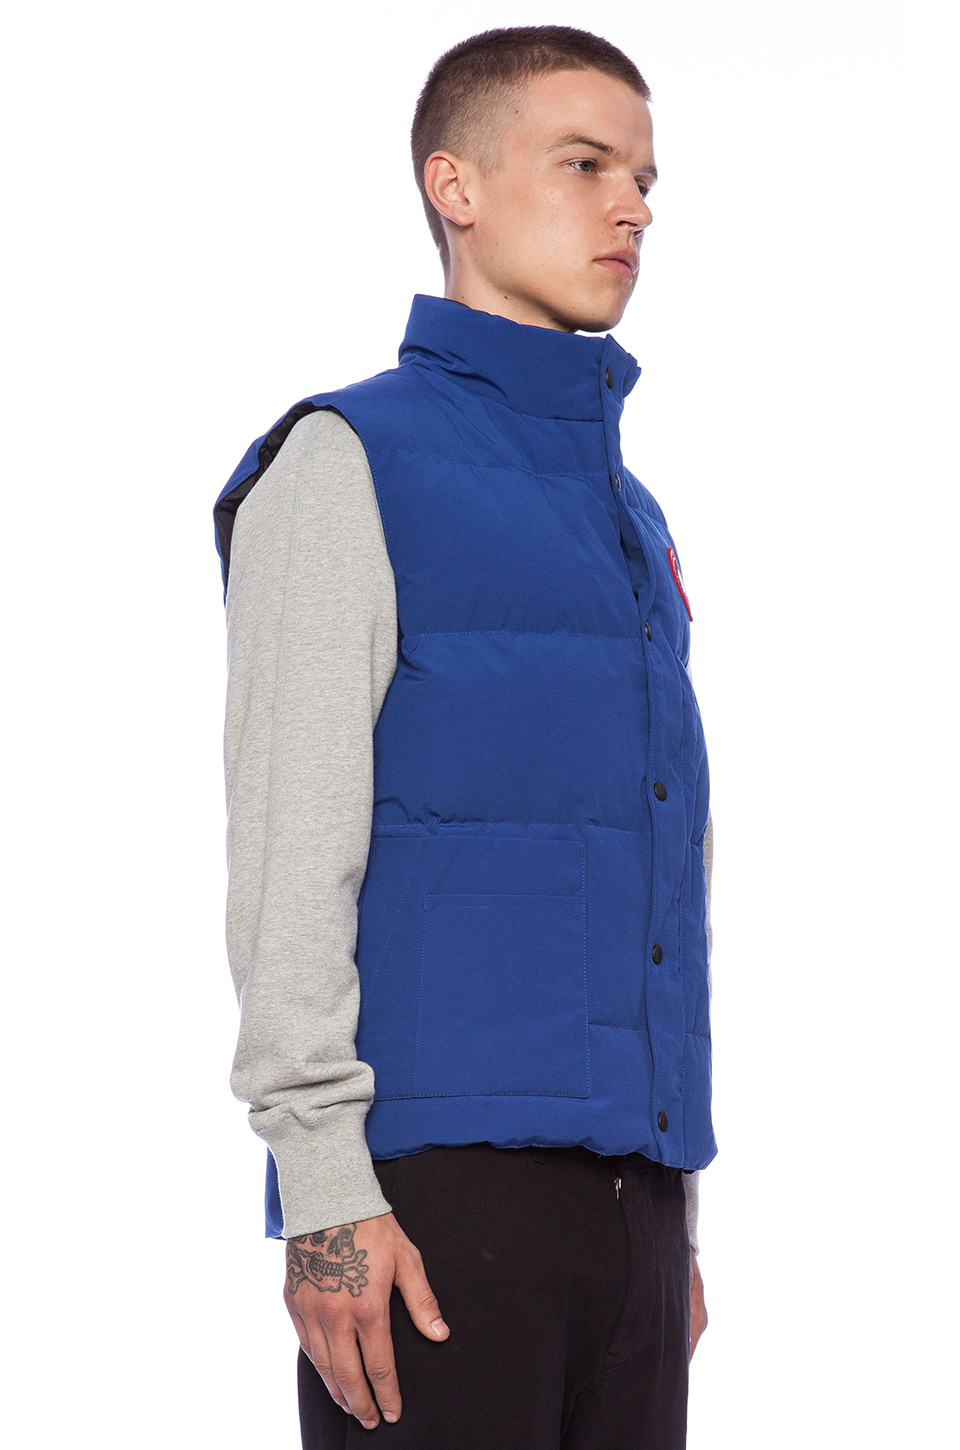 Canada Goose Freestyle Vest In Blue For Men Lyst